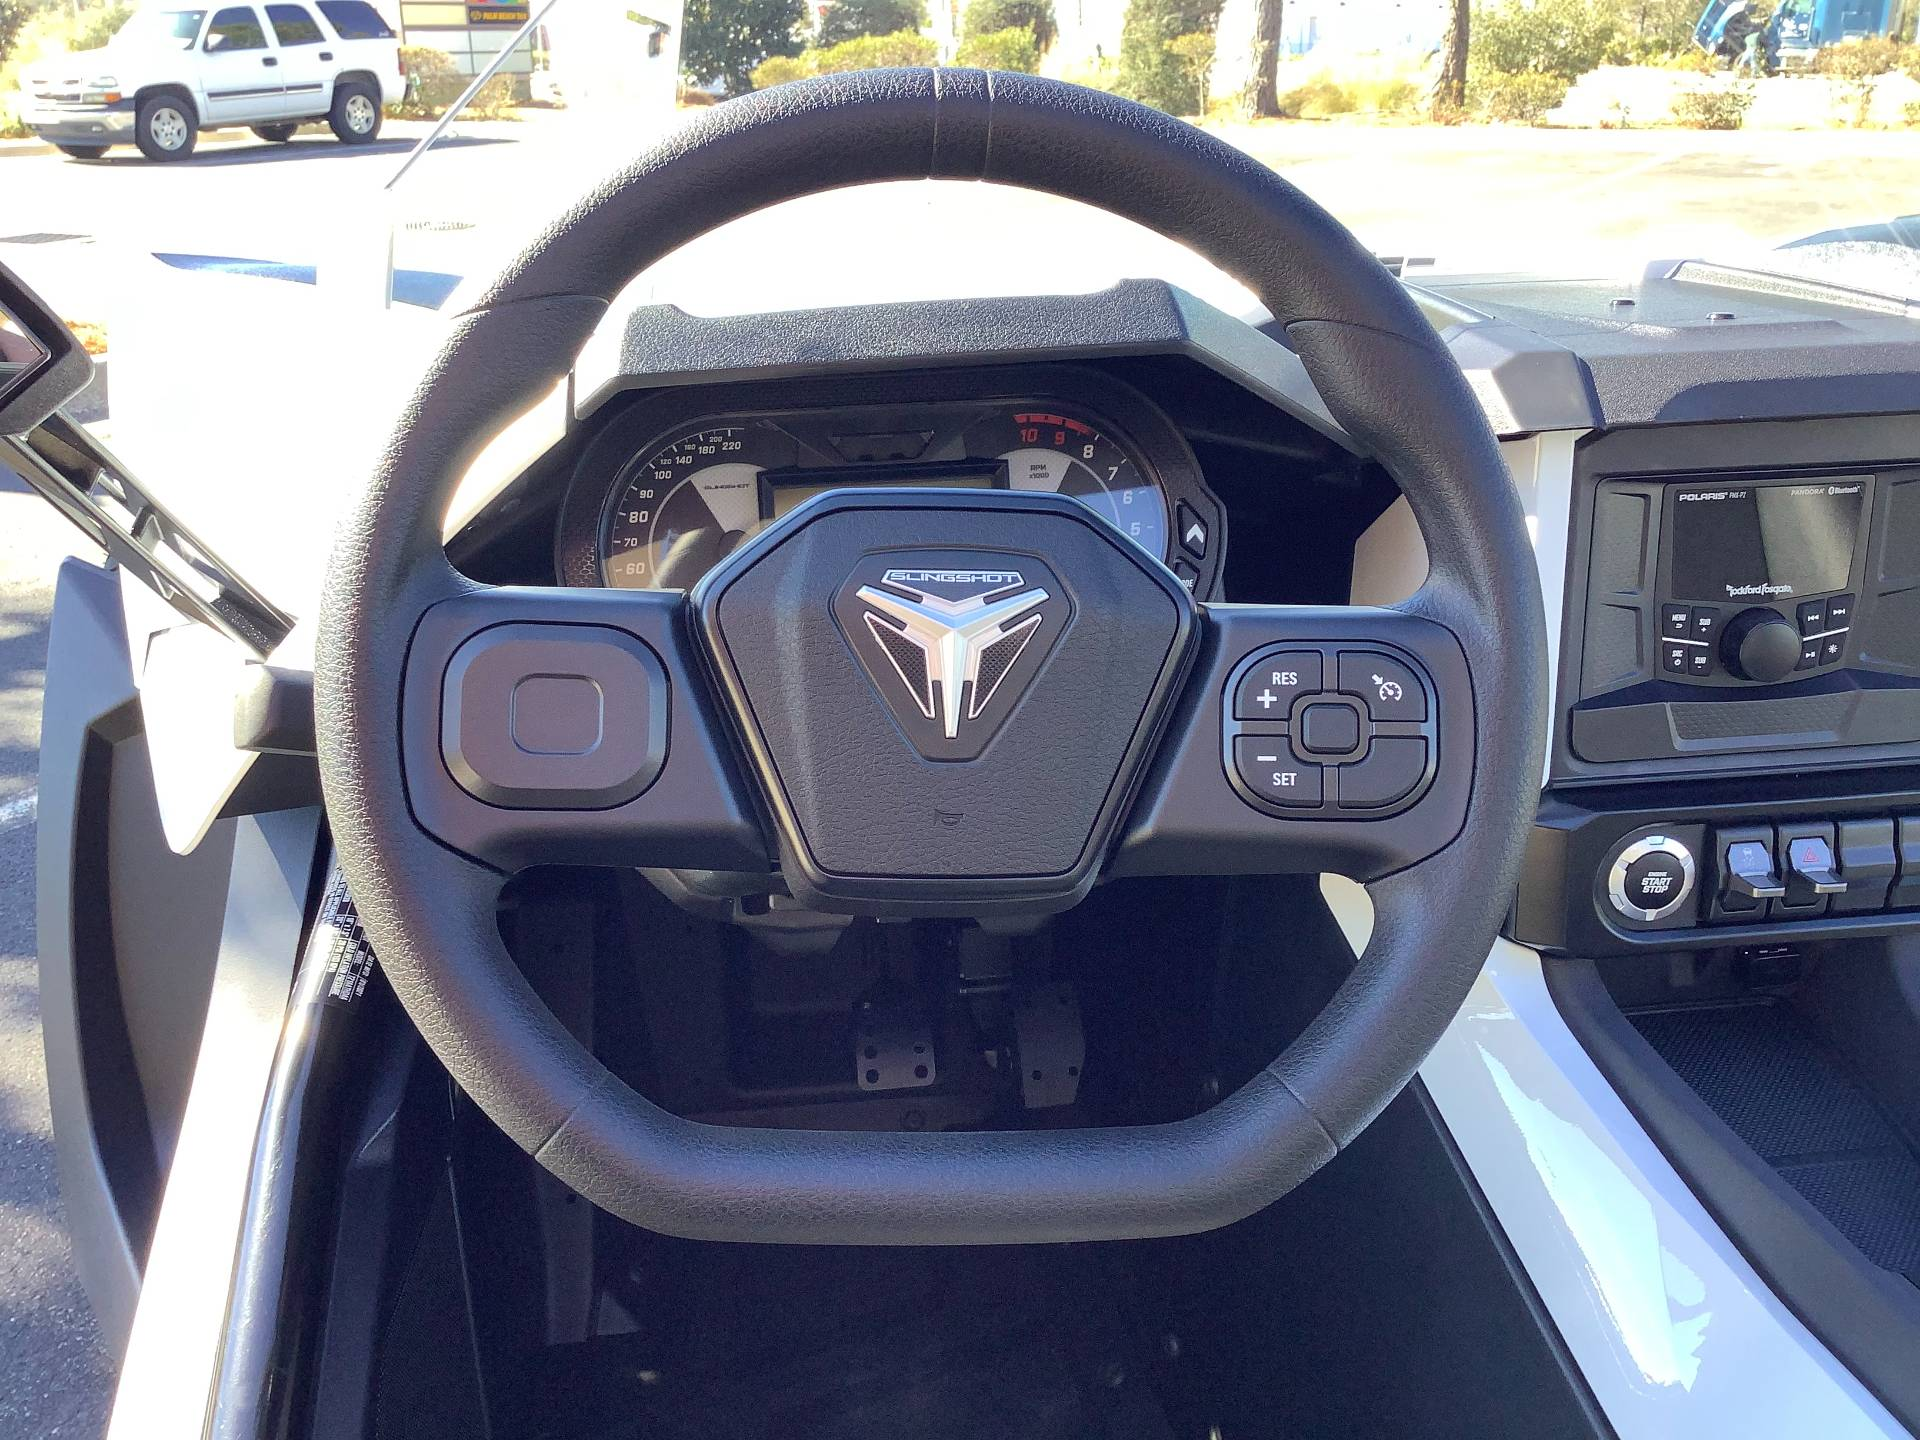 2021 Polaris SLINGSHOT S TECH PACKAGE 1 in Panama City Beach, Florida - Photo 15